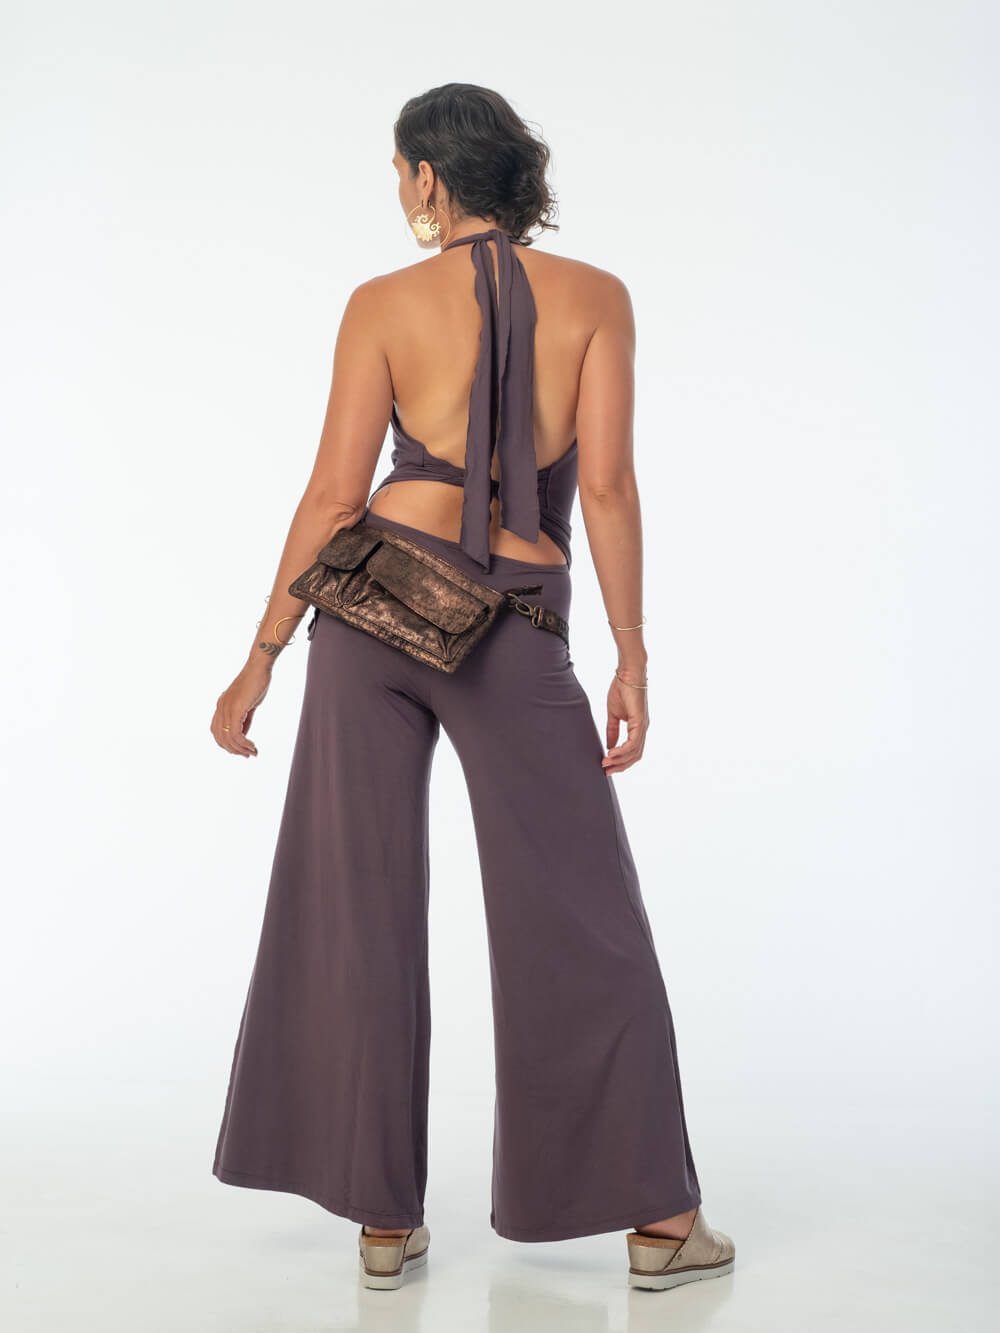 women's natural rayon jersey stretchy halter one-piece jumpsuit in steel grey#color_steel